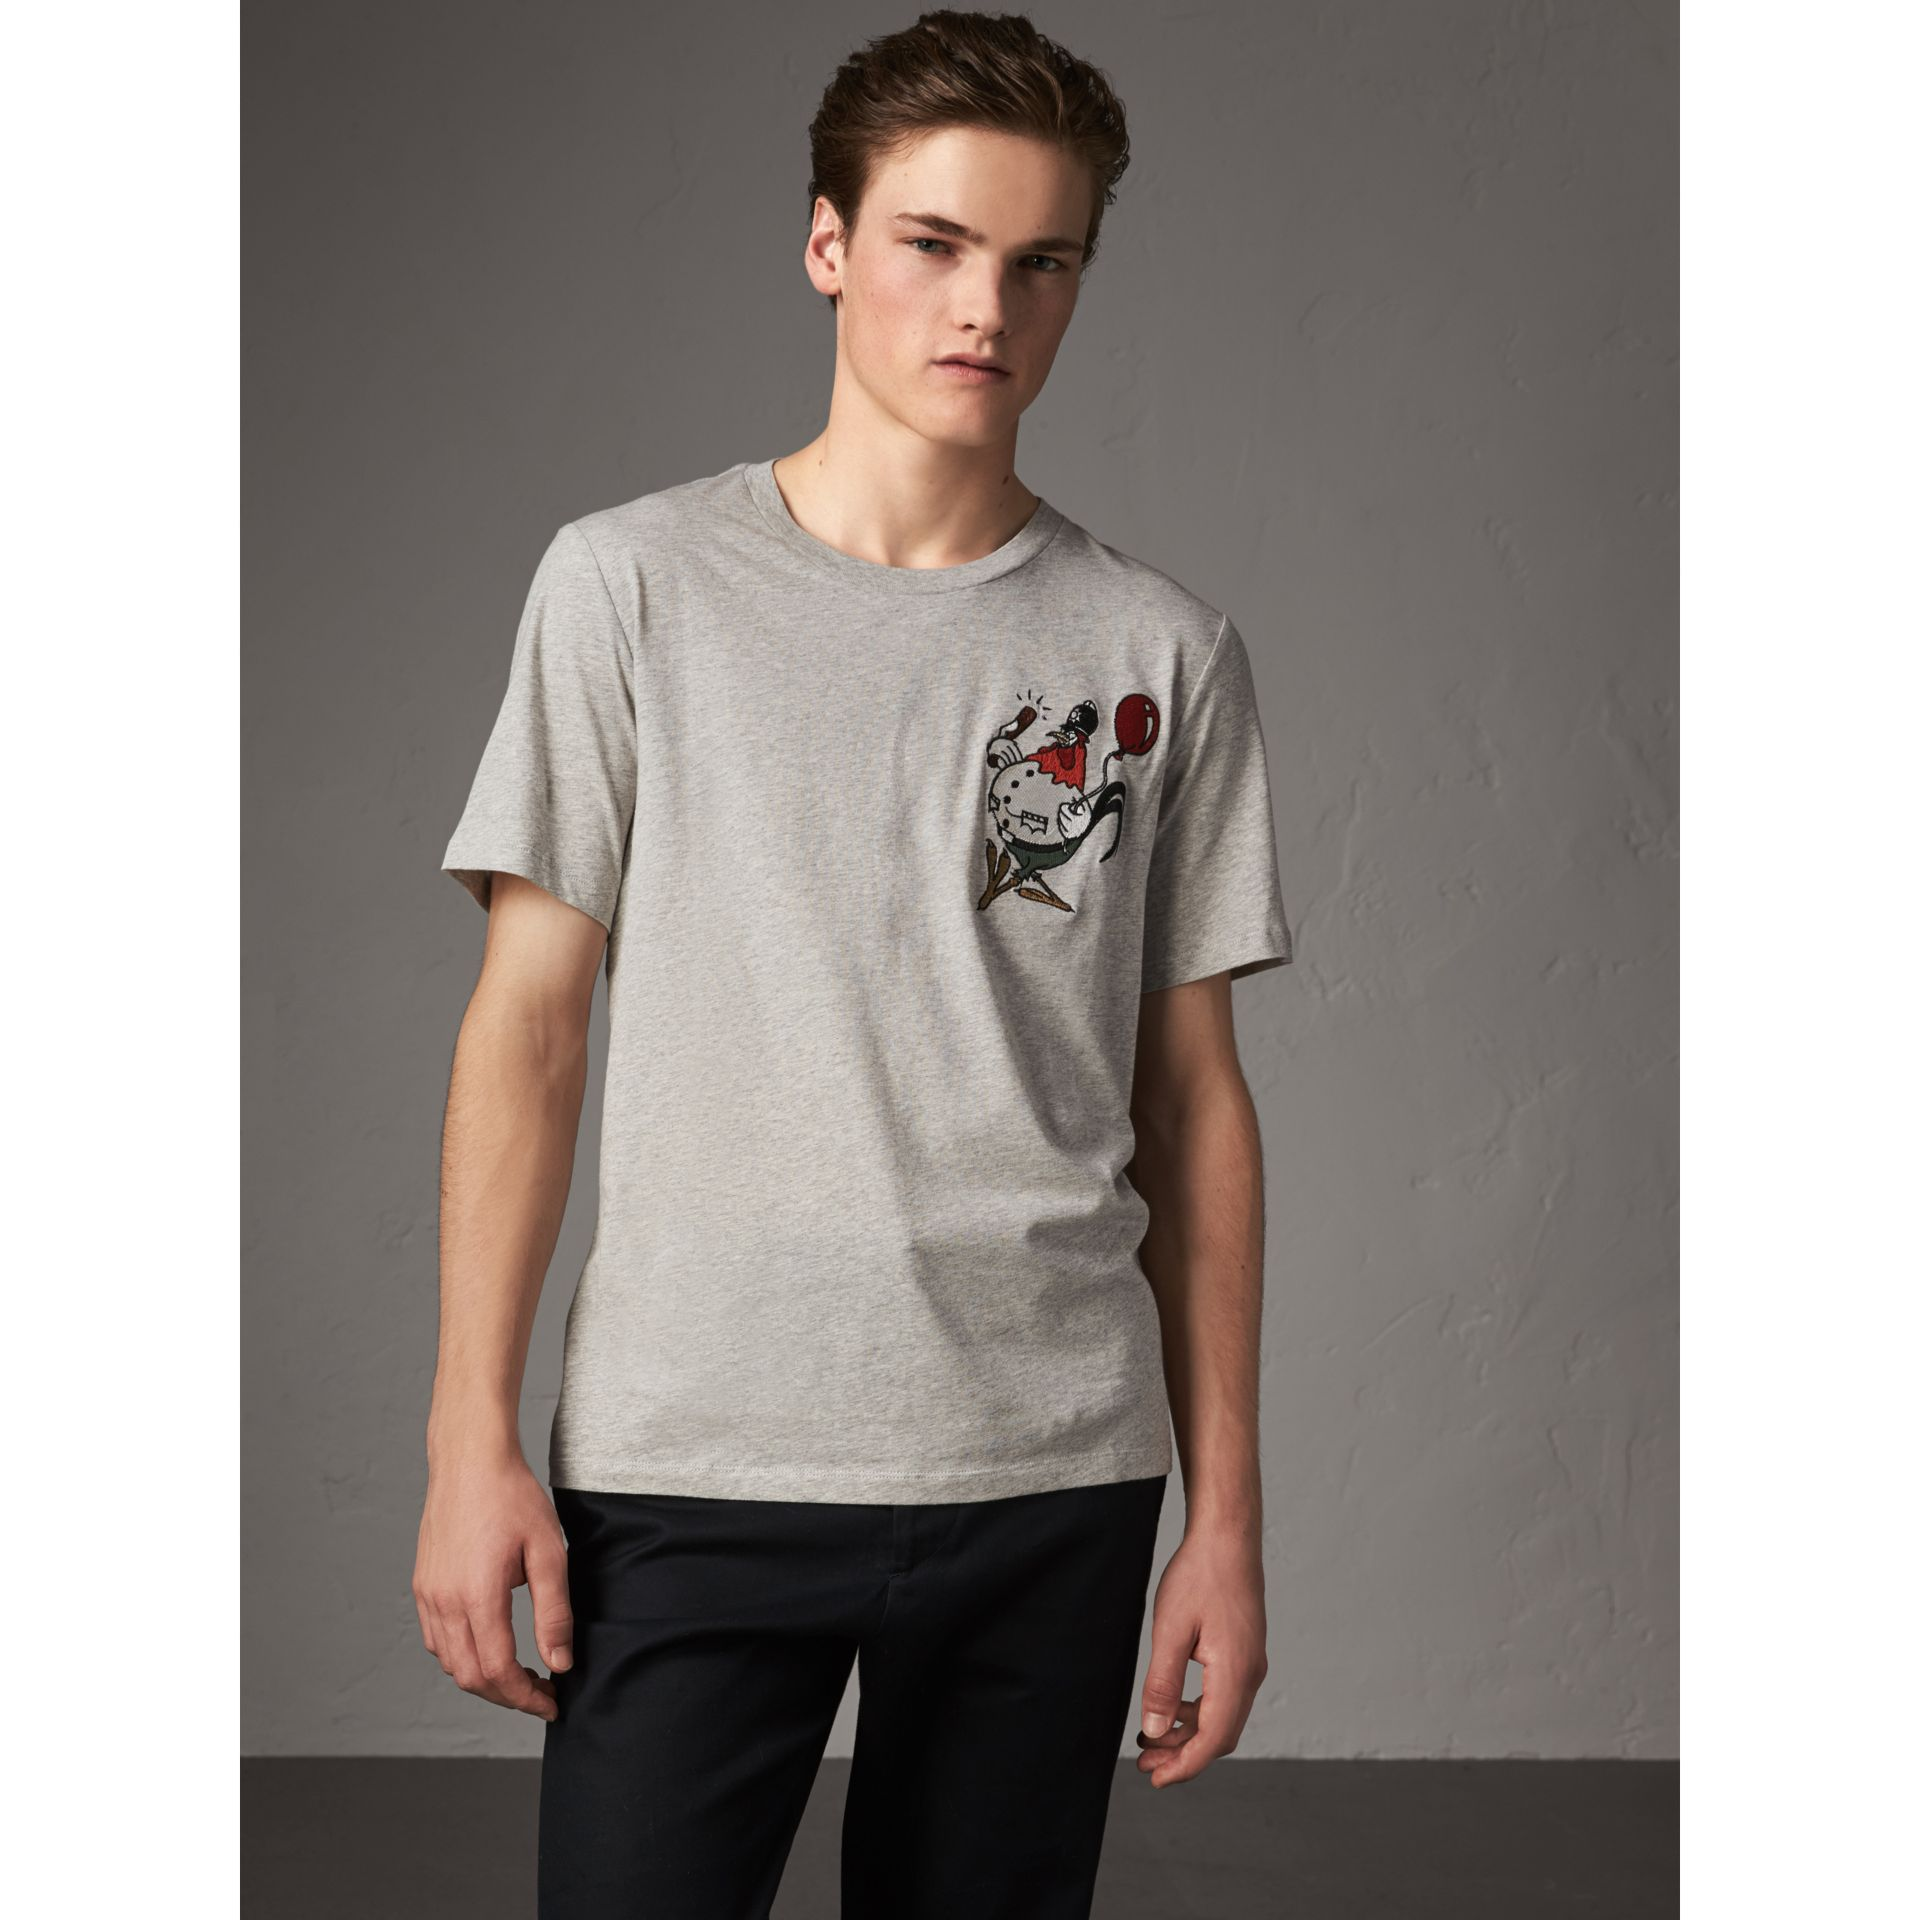 Sketch Appliqué Cotton T-shirt in Pale Grey Melange - Men | Burberry United Kingdom - gallery image 1